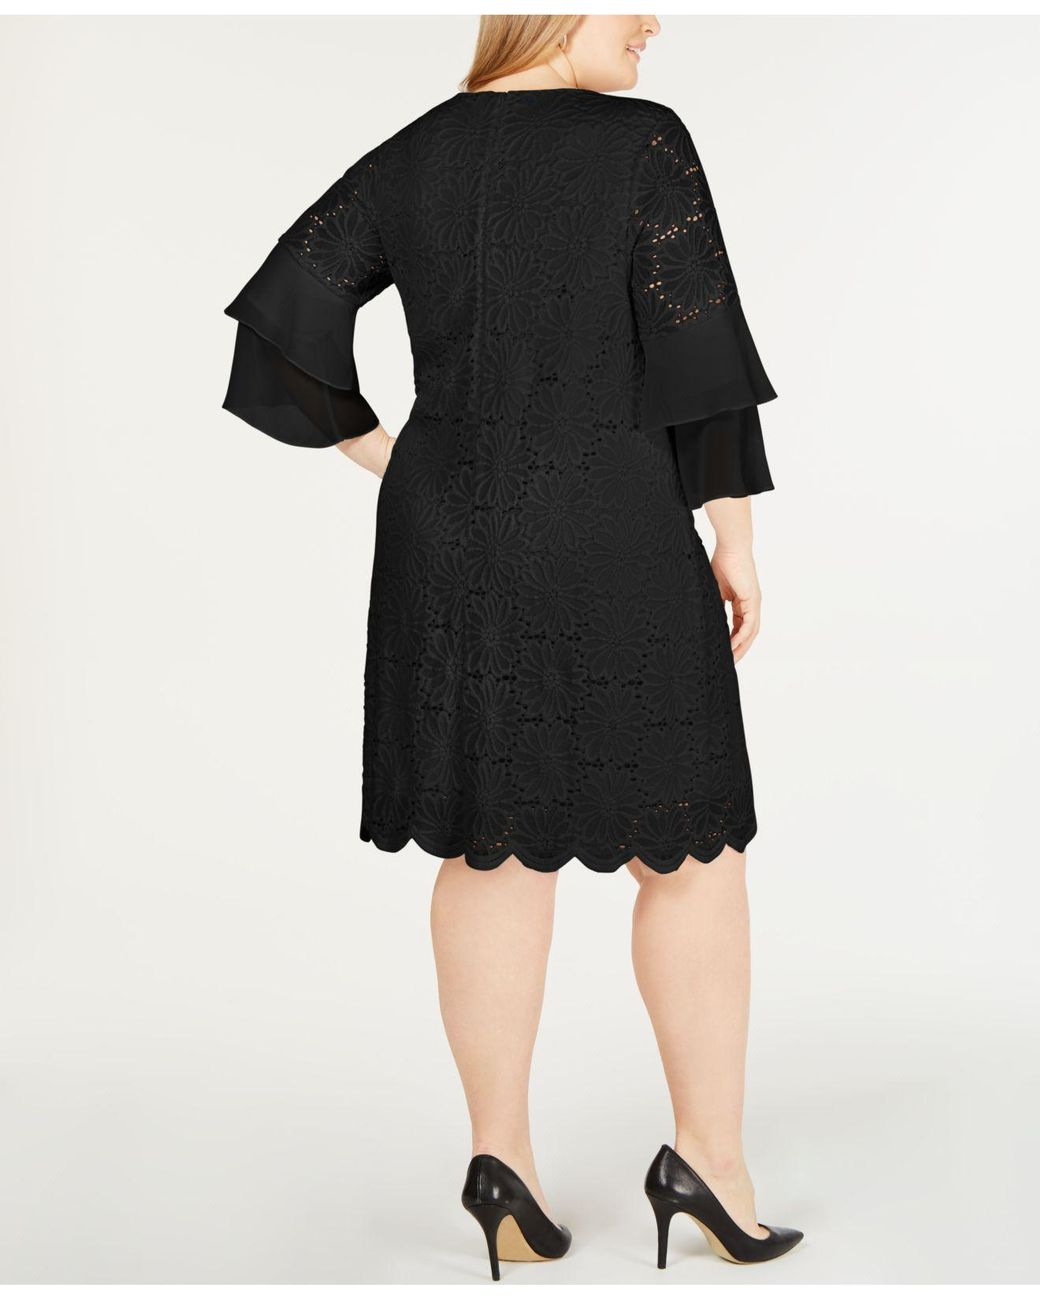 Plus Size Formal Dresses Macys – DACC